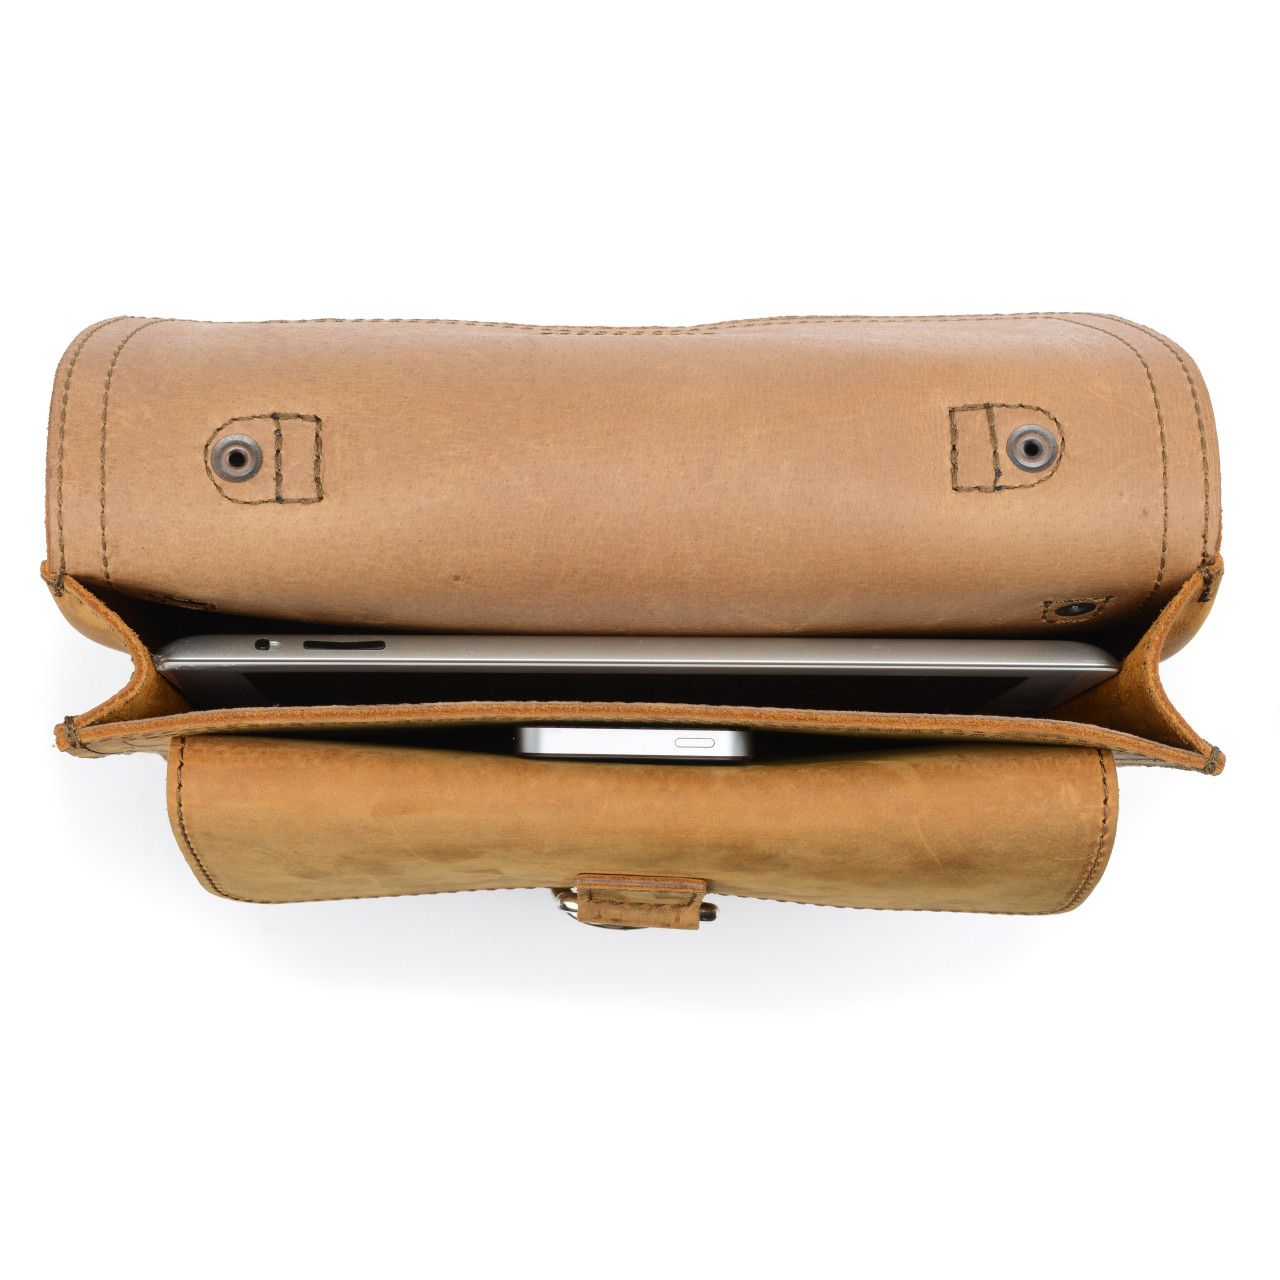 Macbook and iphone in the inside of the leather tablet messenger bag in tobacco leather